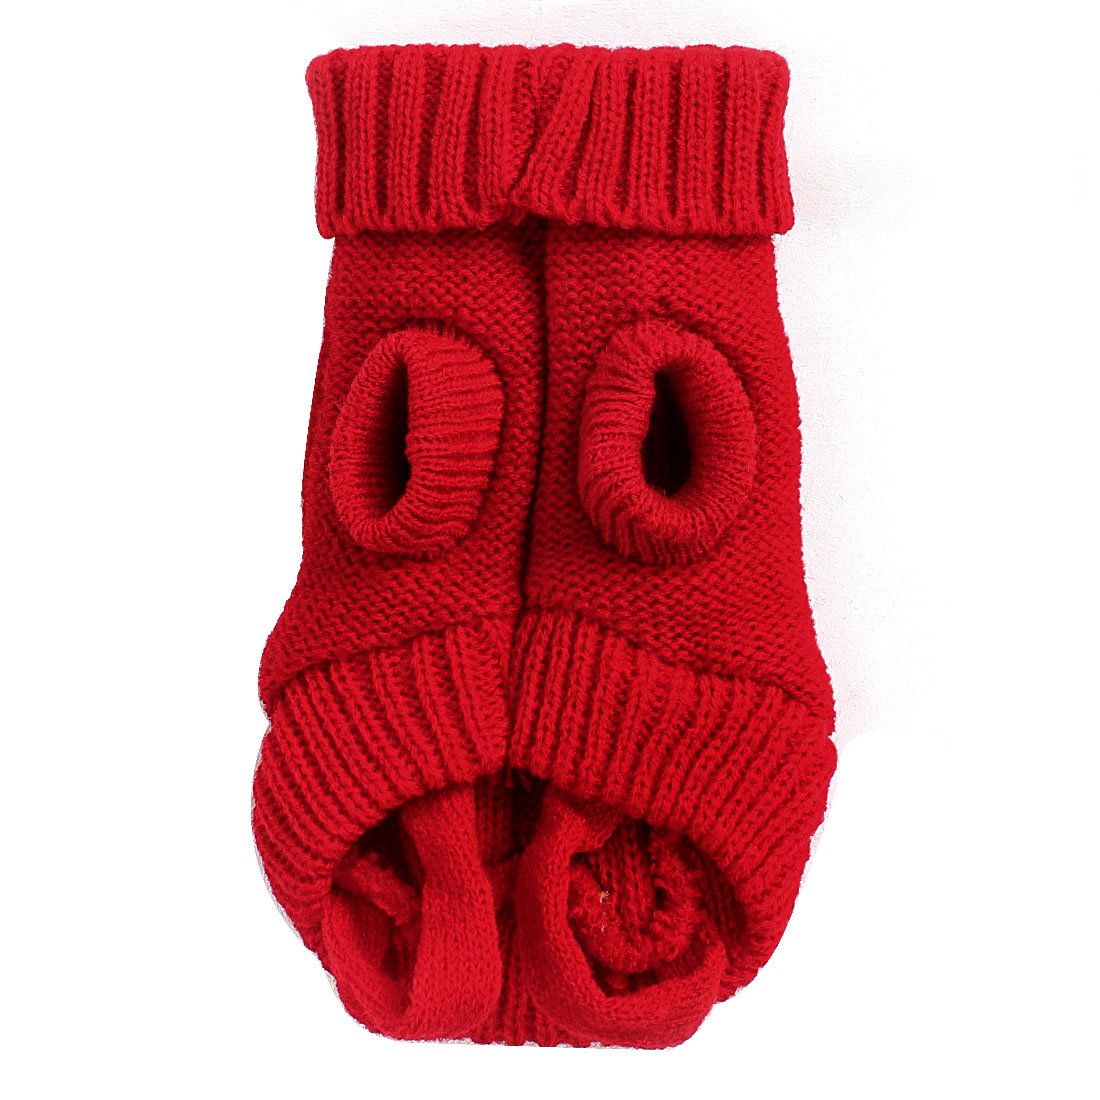 Pet Dog Doggie Red Twisted Knit Ribbed Cuff Knitwear Apparel Sweater Size XXS